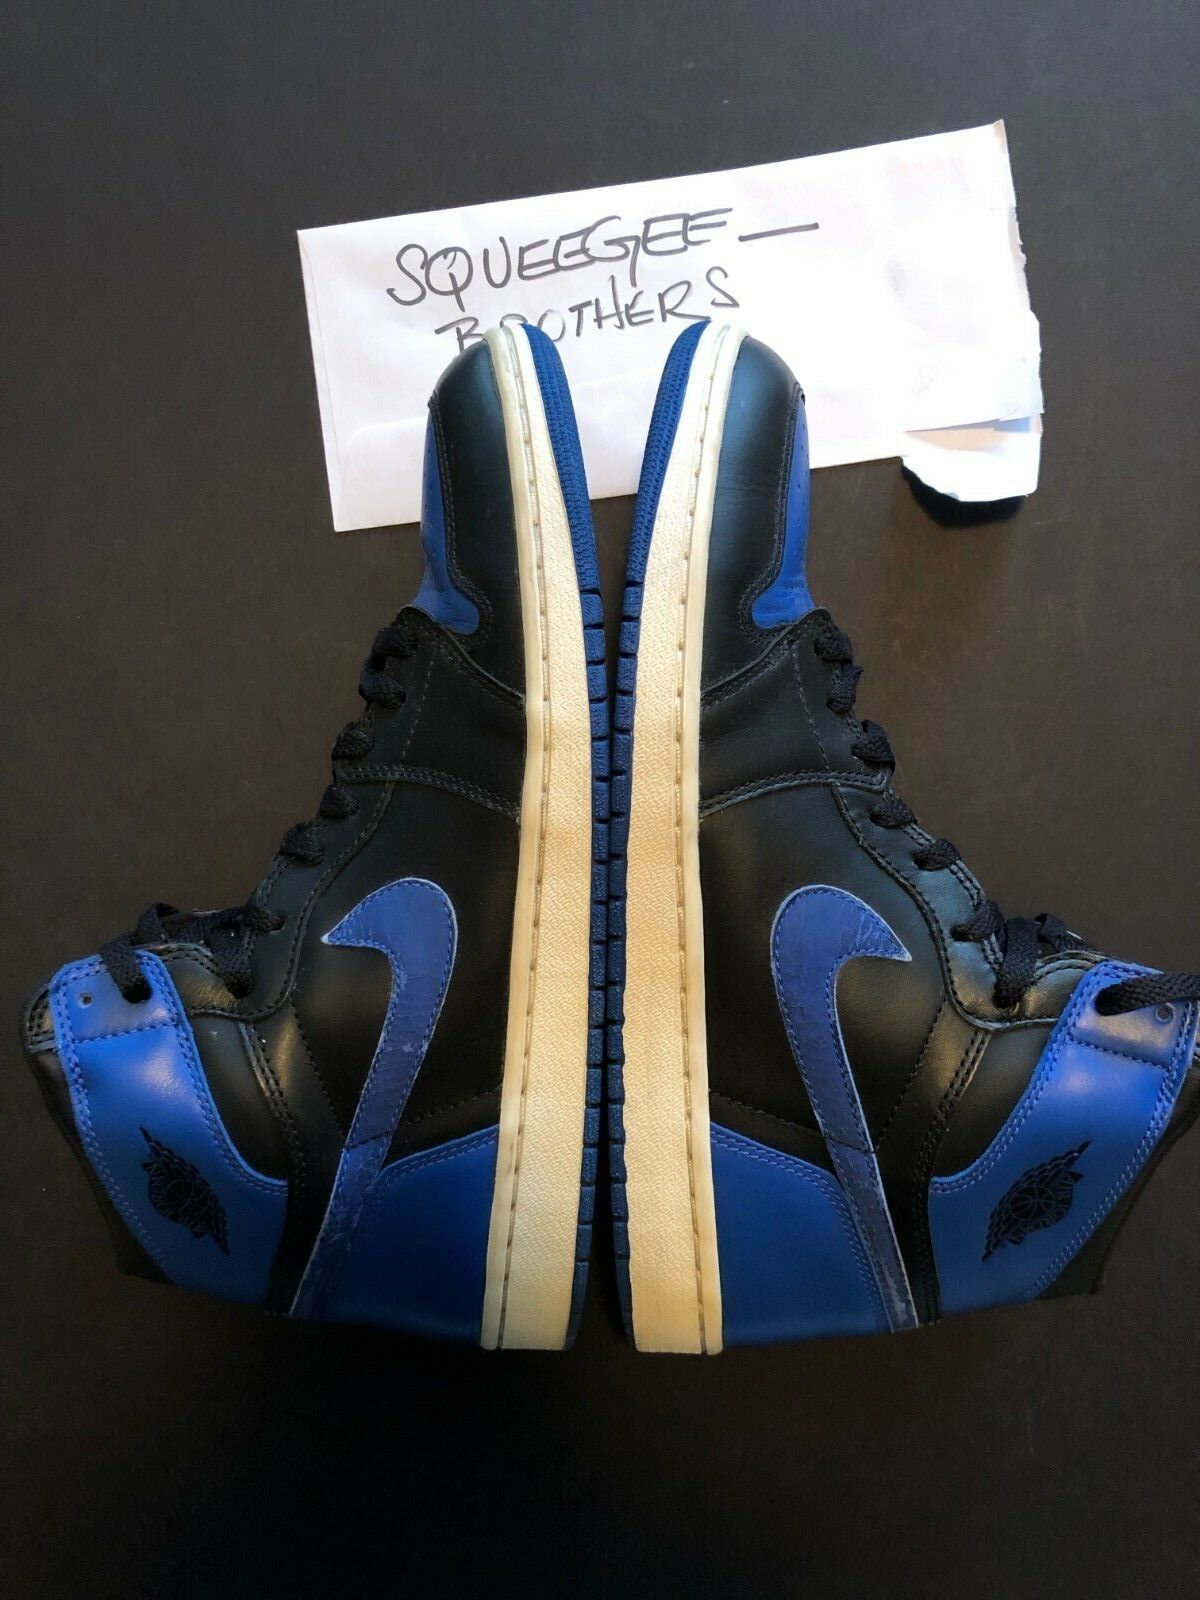 Air Jordan 1 Retro Royal bluee OG 2001 Size 11.5 Nike